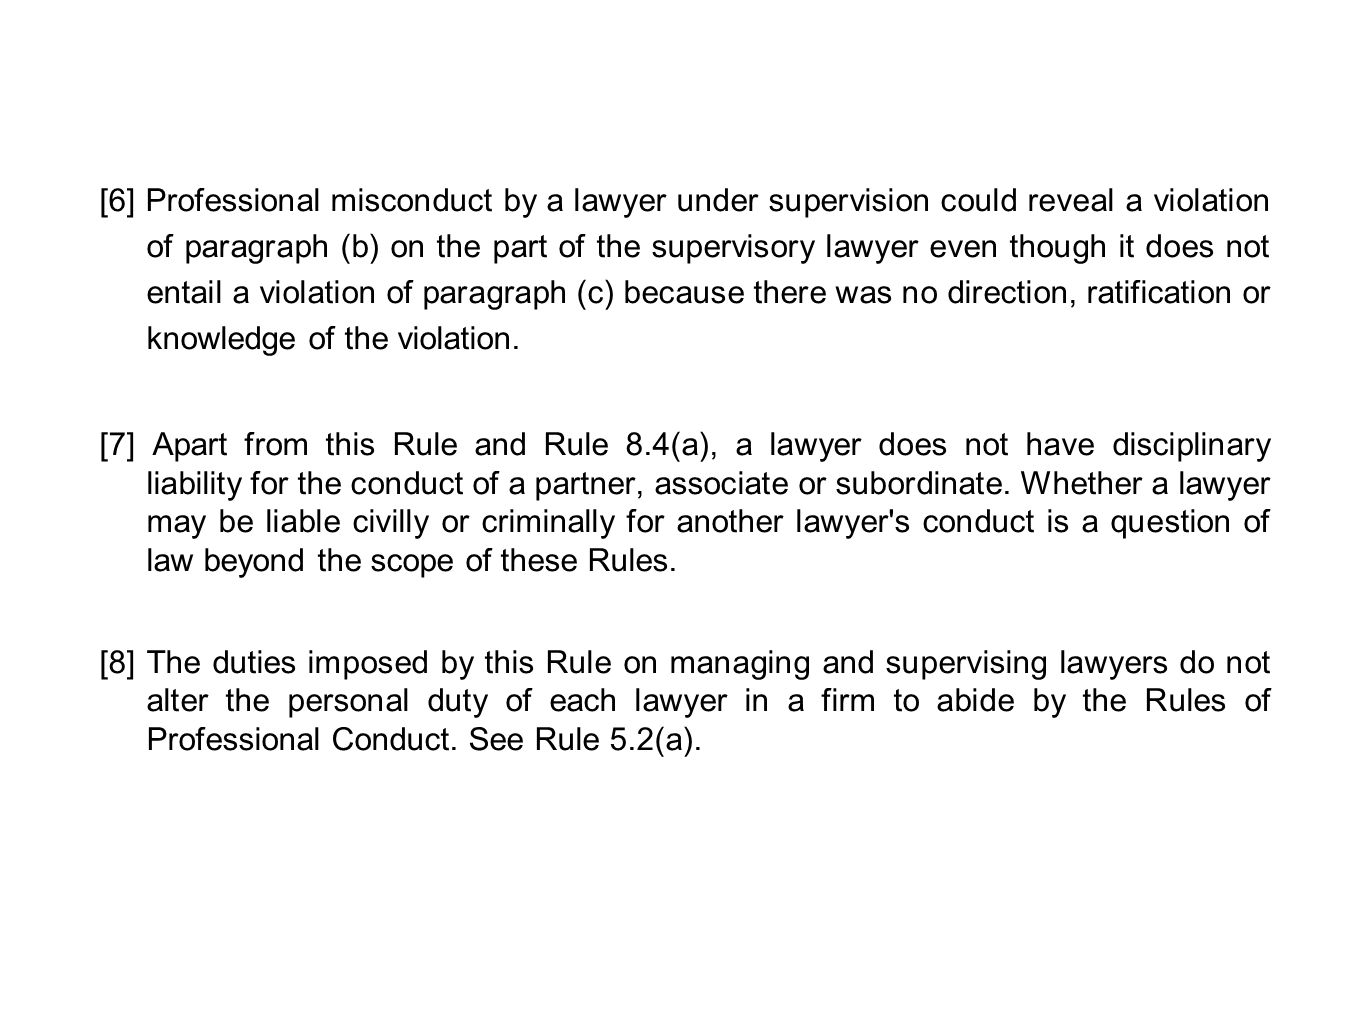 [6] Professional misconduct by a lawyer under supervision could reveal a violation of paragraph (b) on the part of the supervisory lawyer even though